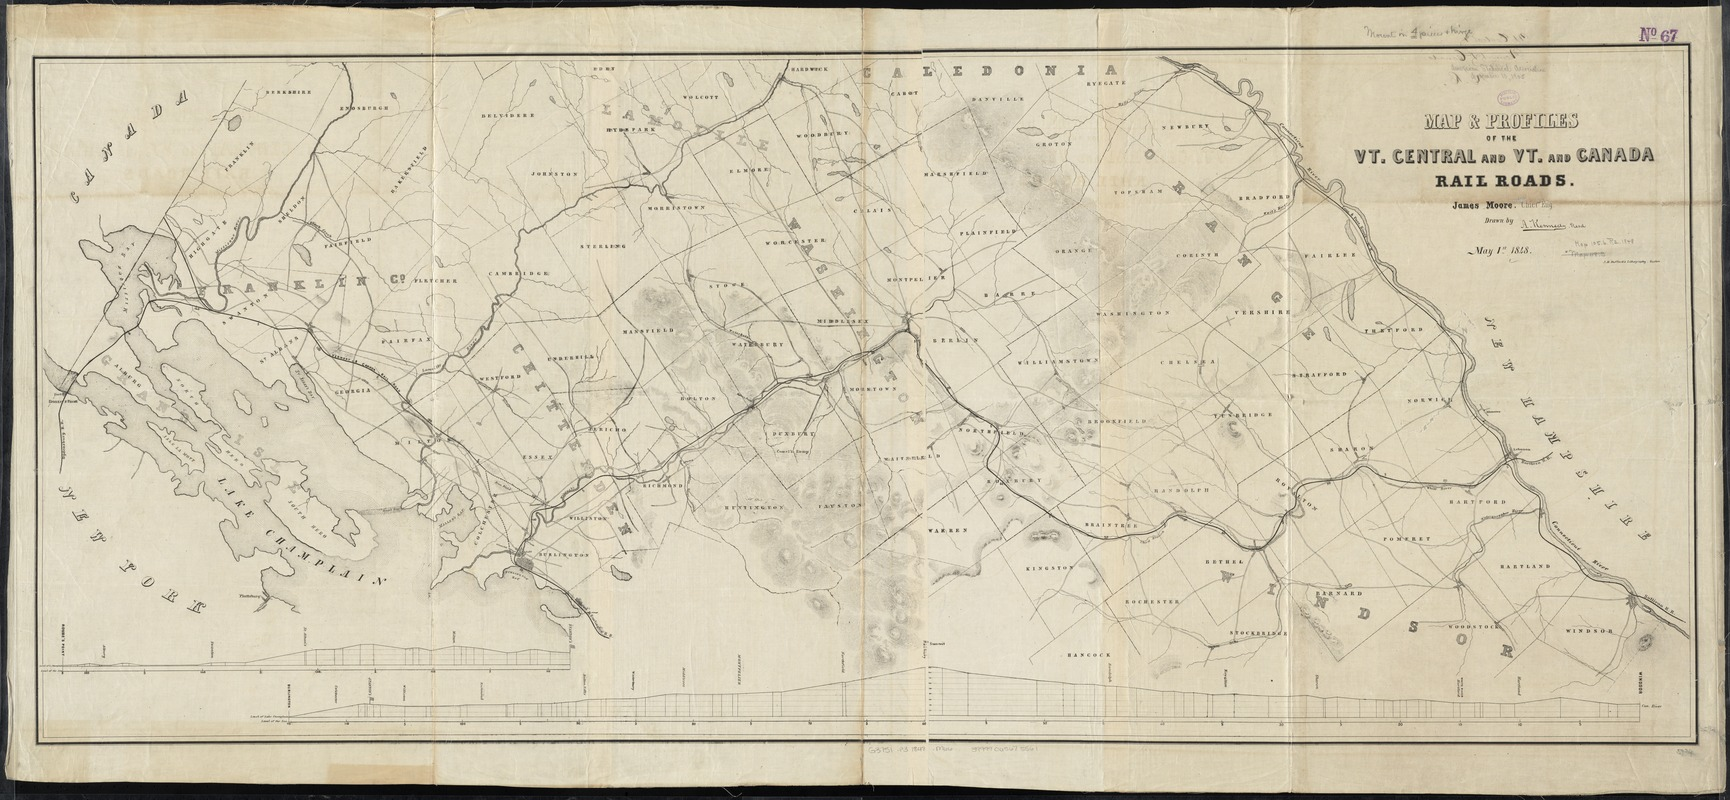 Map & profiles of the Vt. Central and Vt. and Canada Railroads